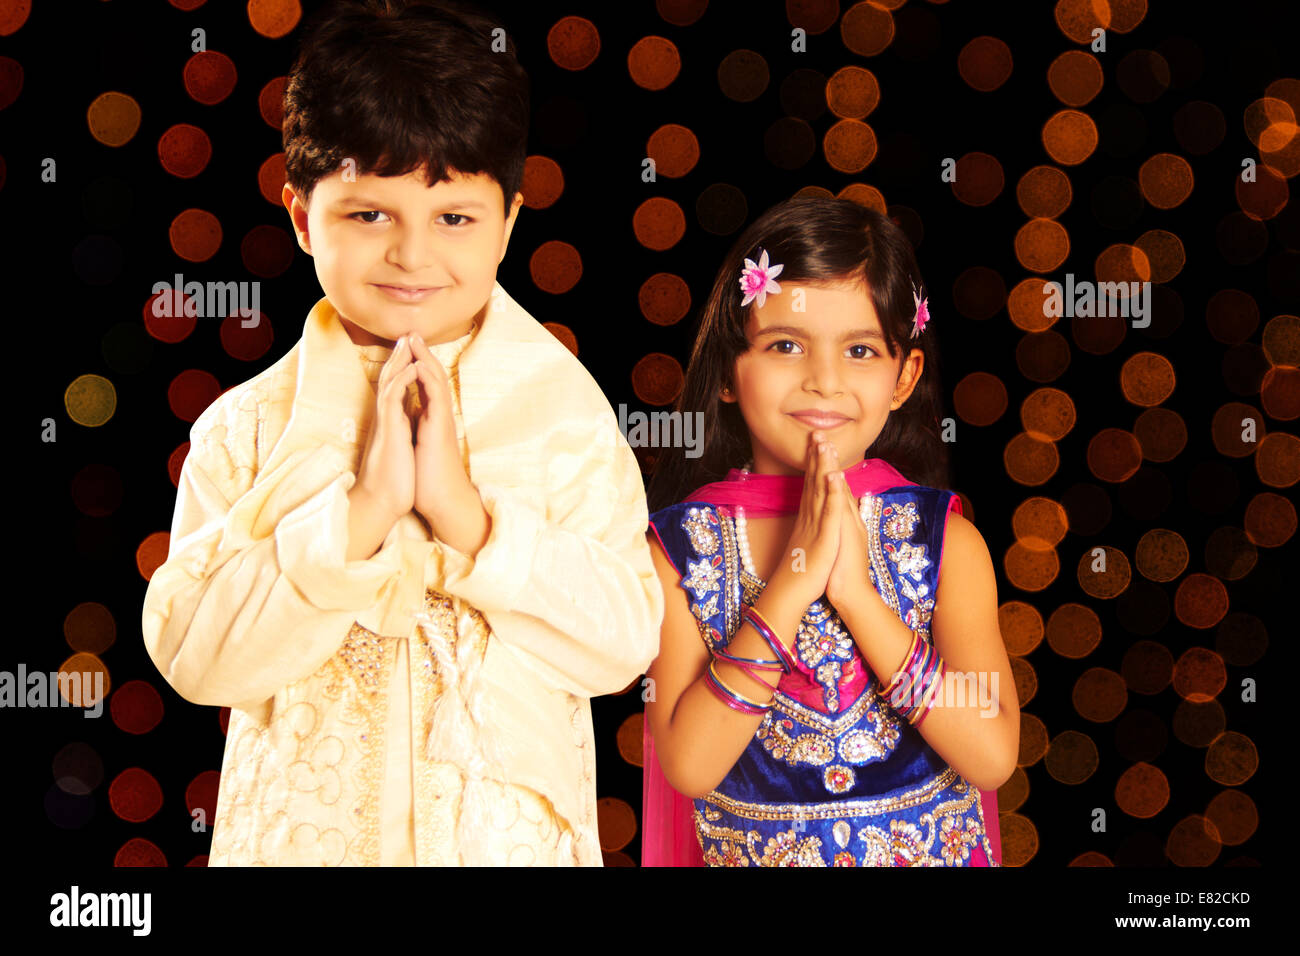 indian child diwali Festival welcome - Stock Image